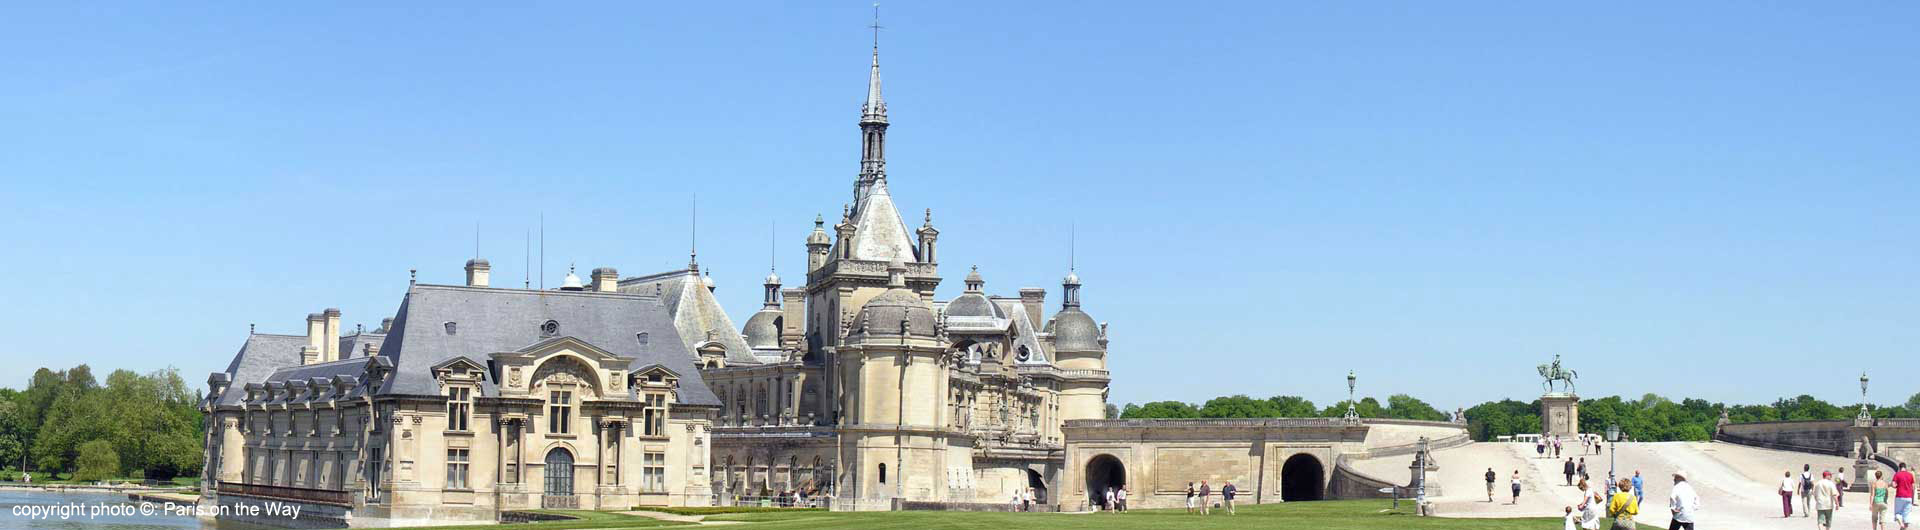 Guided Tour of Vaux le Vicomte